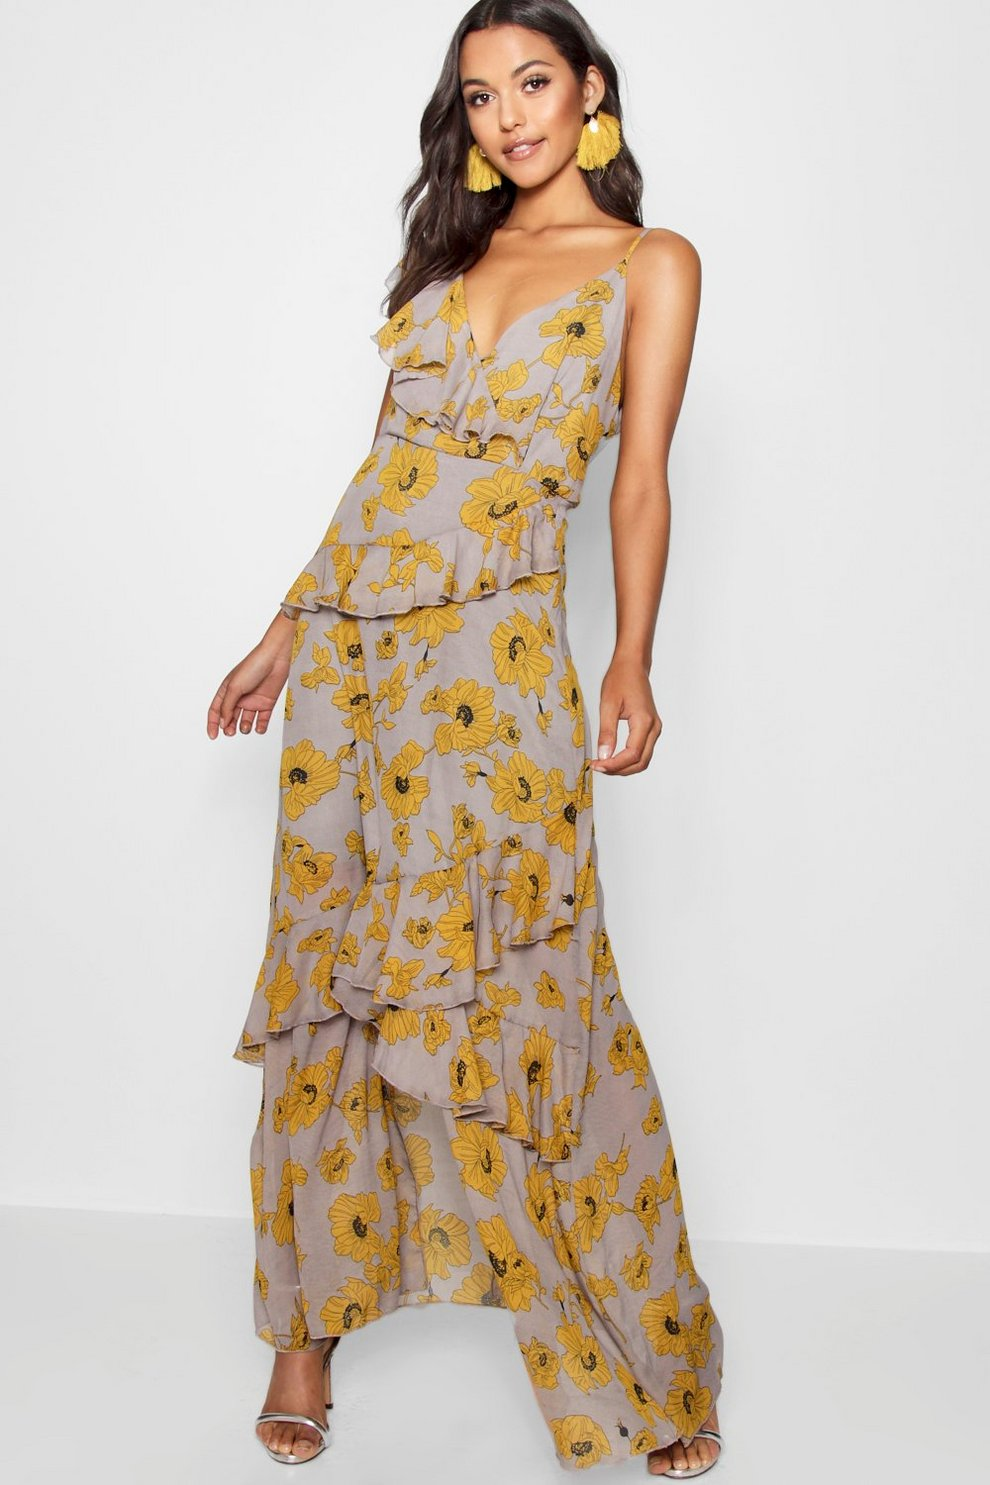 Boohoo Lydia Floral Ruffle Detail Maxi Dress Footlocker Finishline Cheap Price For Sale Finishline Fake Cheap Online Clearance Release Dates te0xJ7f